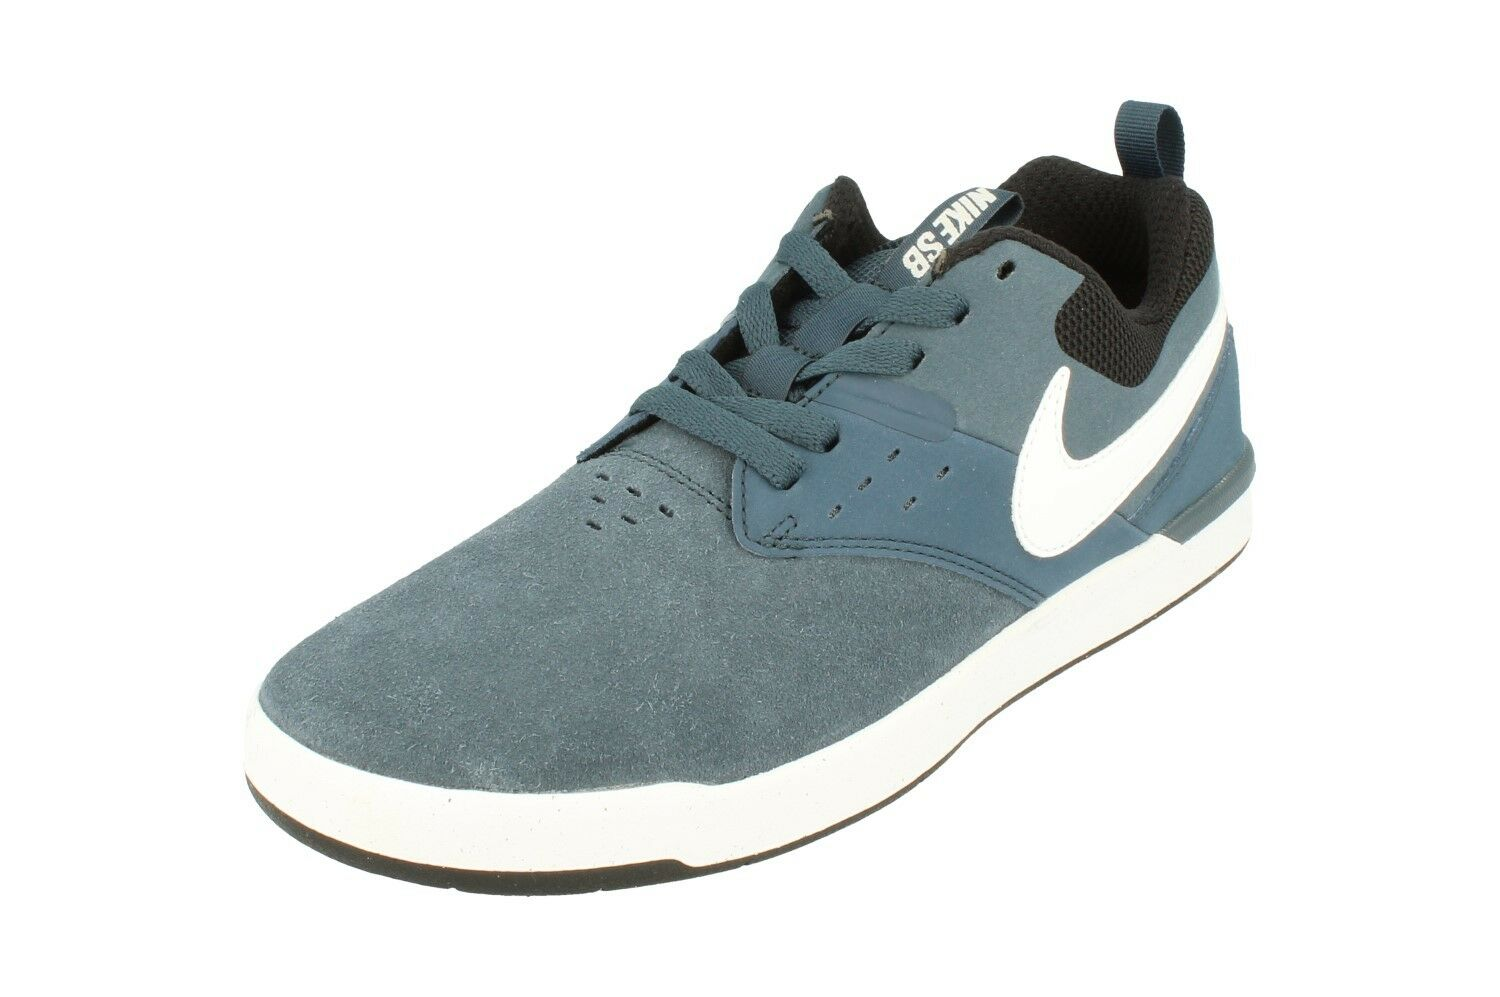 Nike Sb Zoom Ejecta Mens Trainers 749752 Sneakers shoes 410